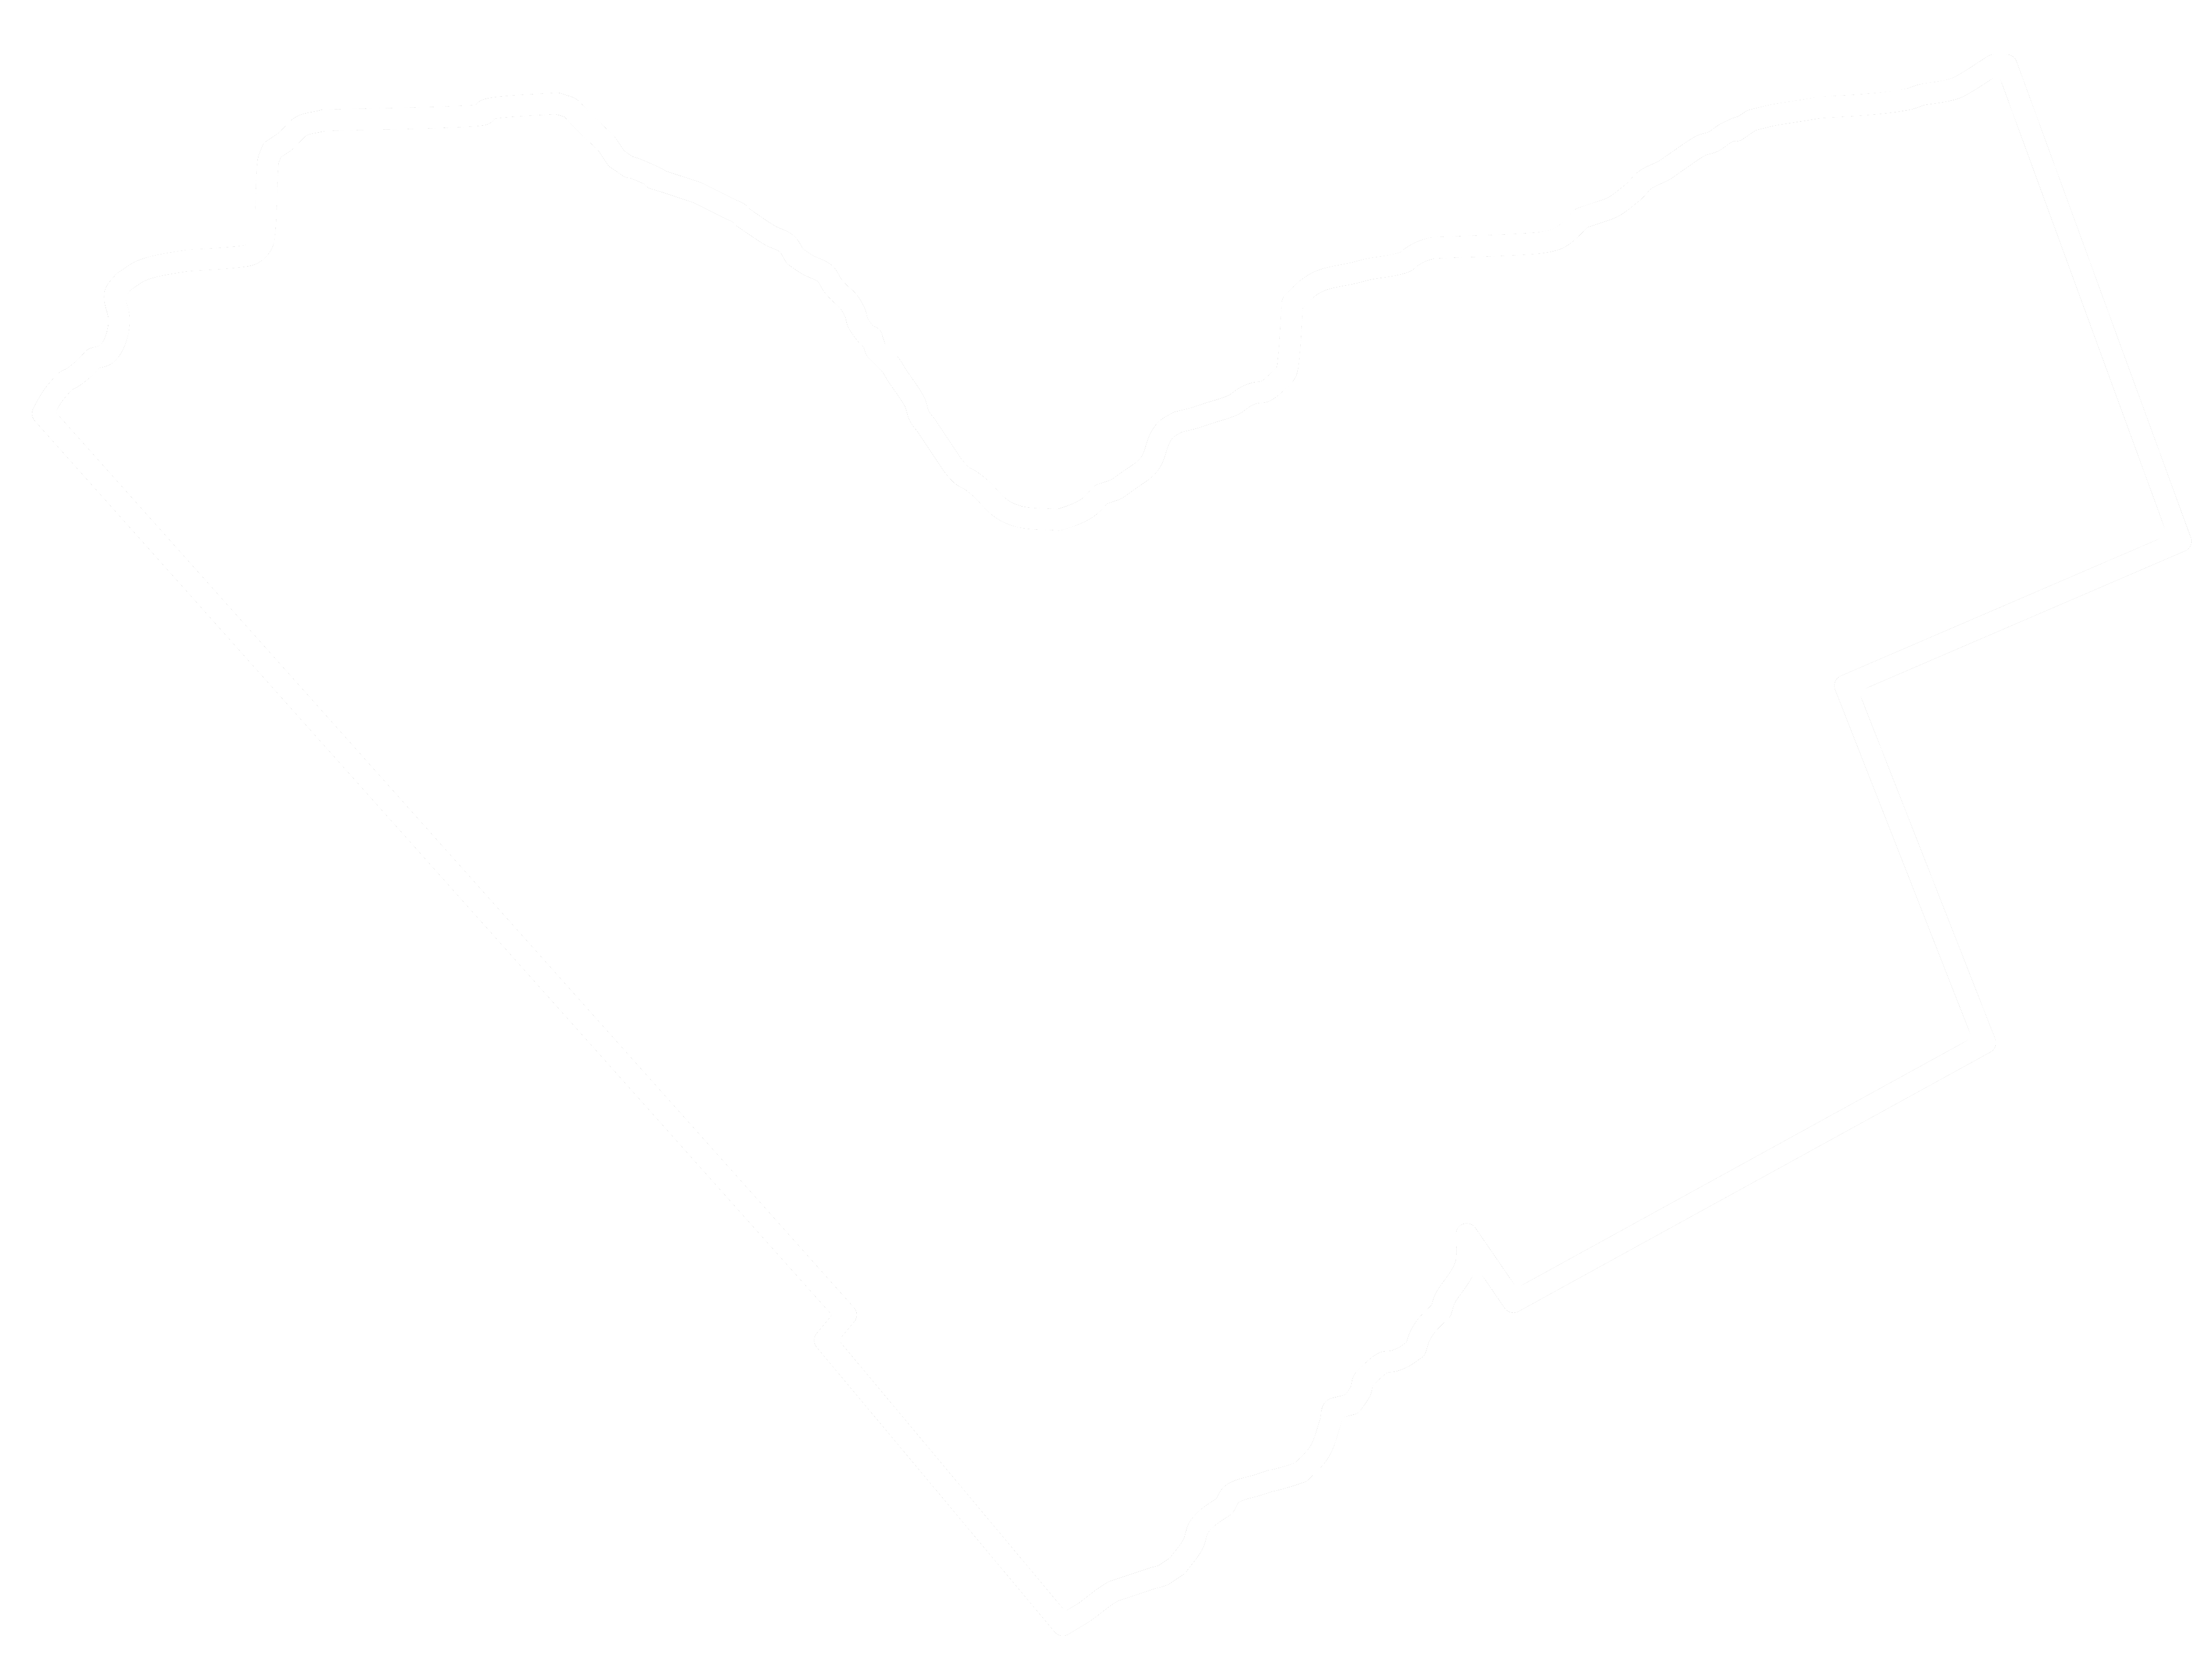 Outline of Ottawa